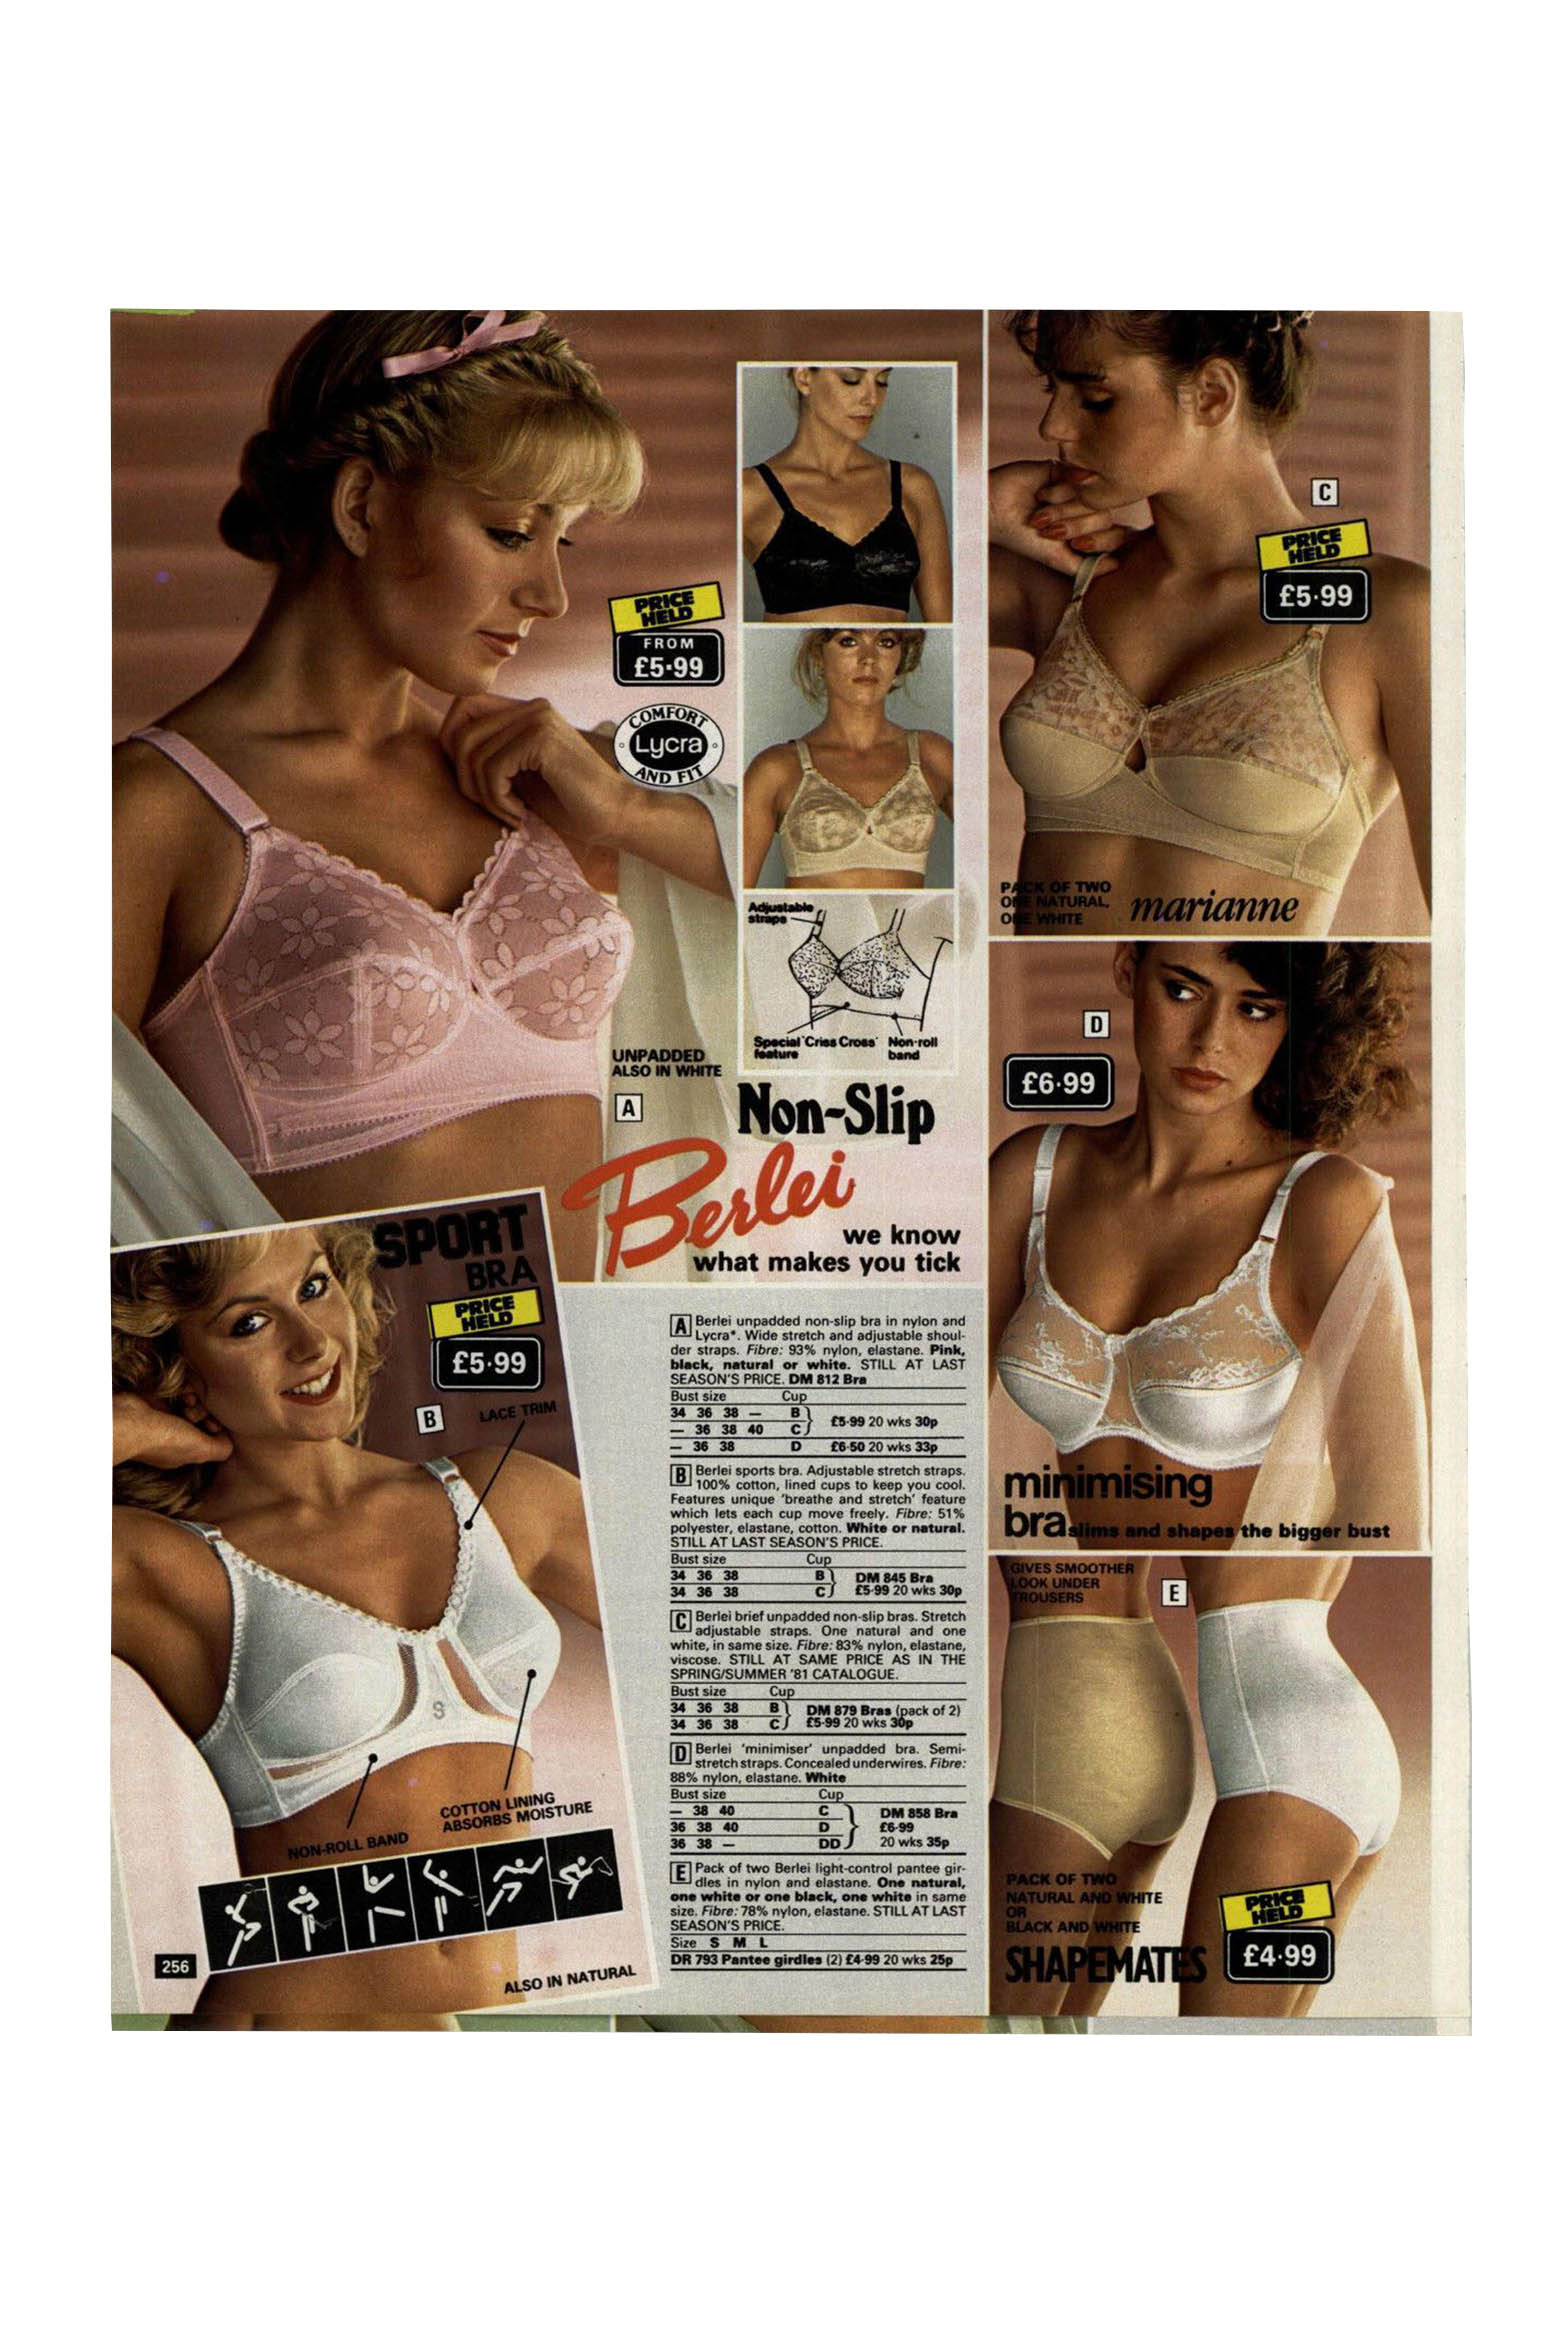 A page from the Littlewoods catalog showing women wearing bras and shapewear.